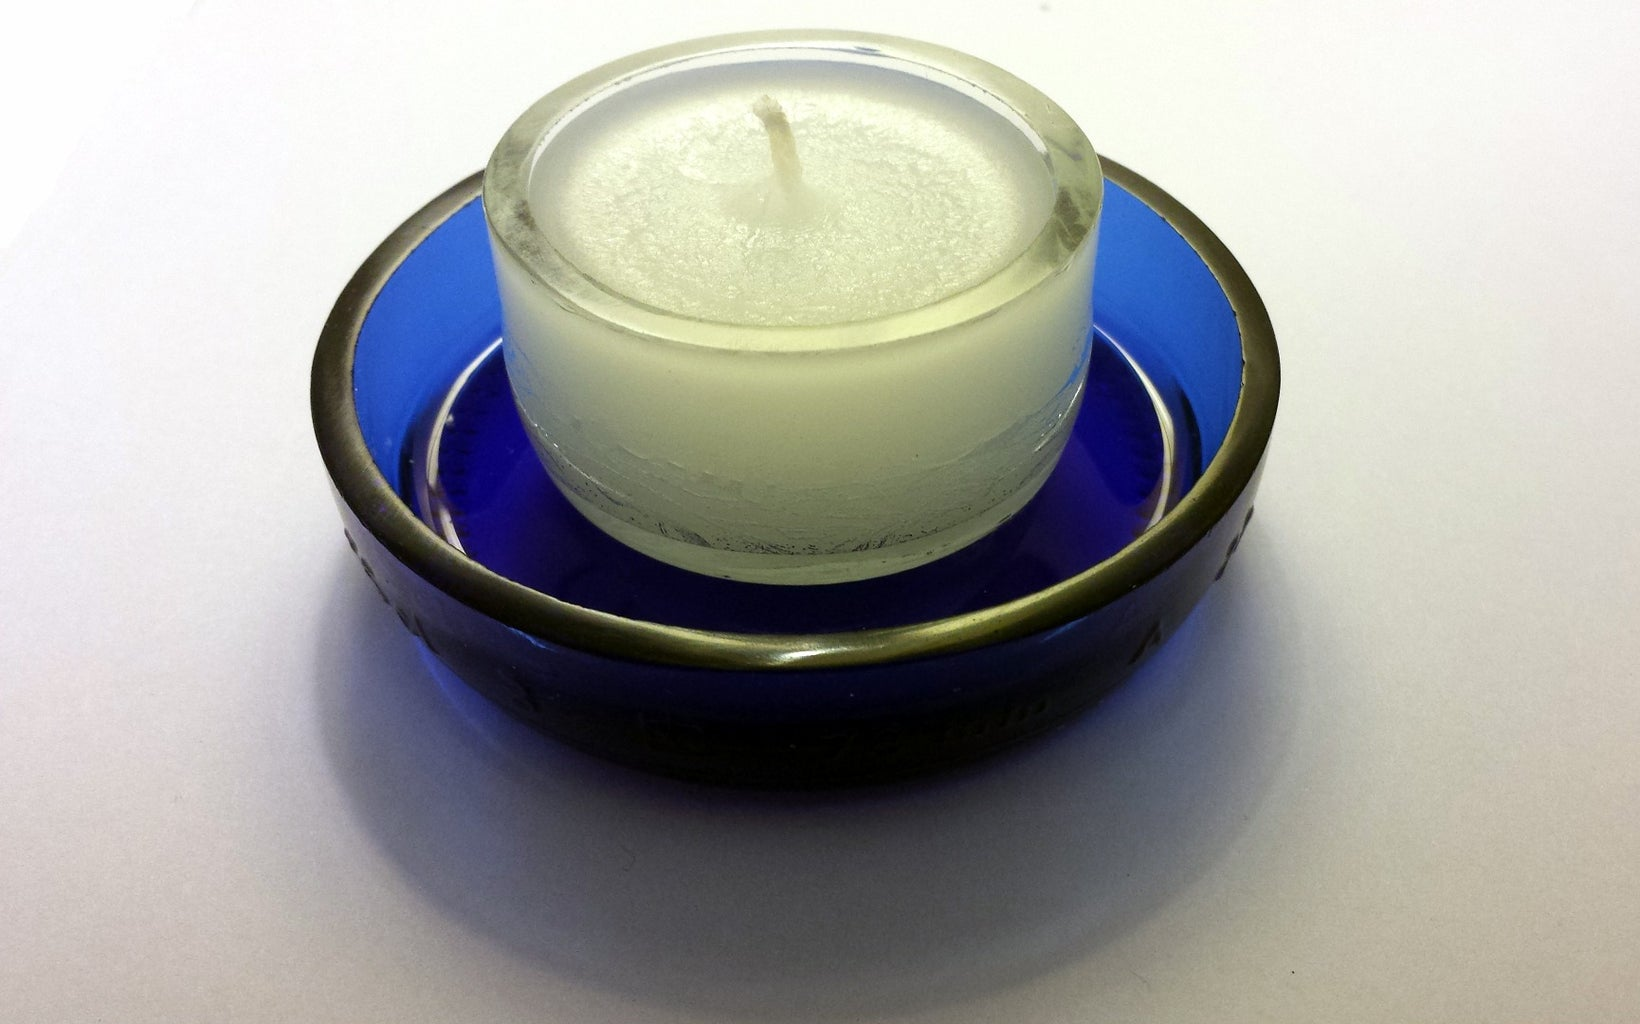 Candle the First: Paraffin